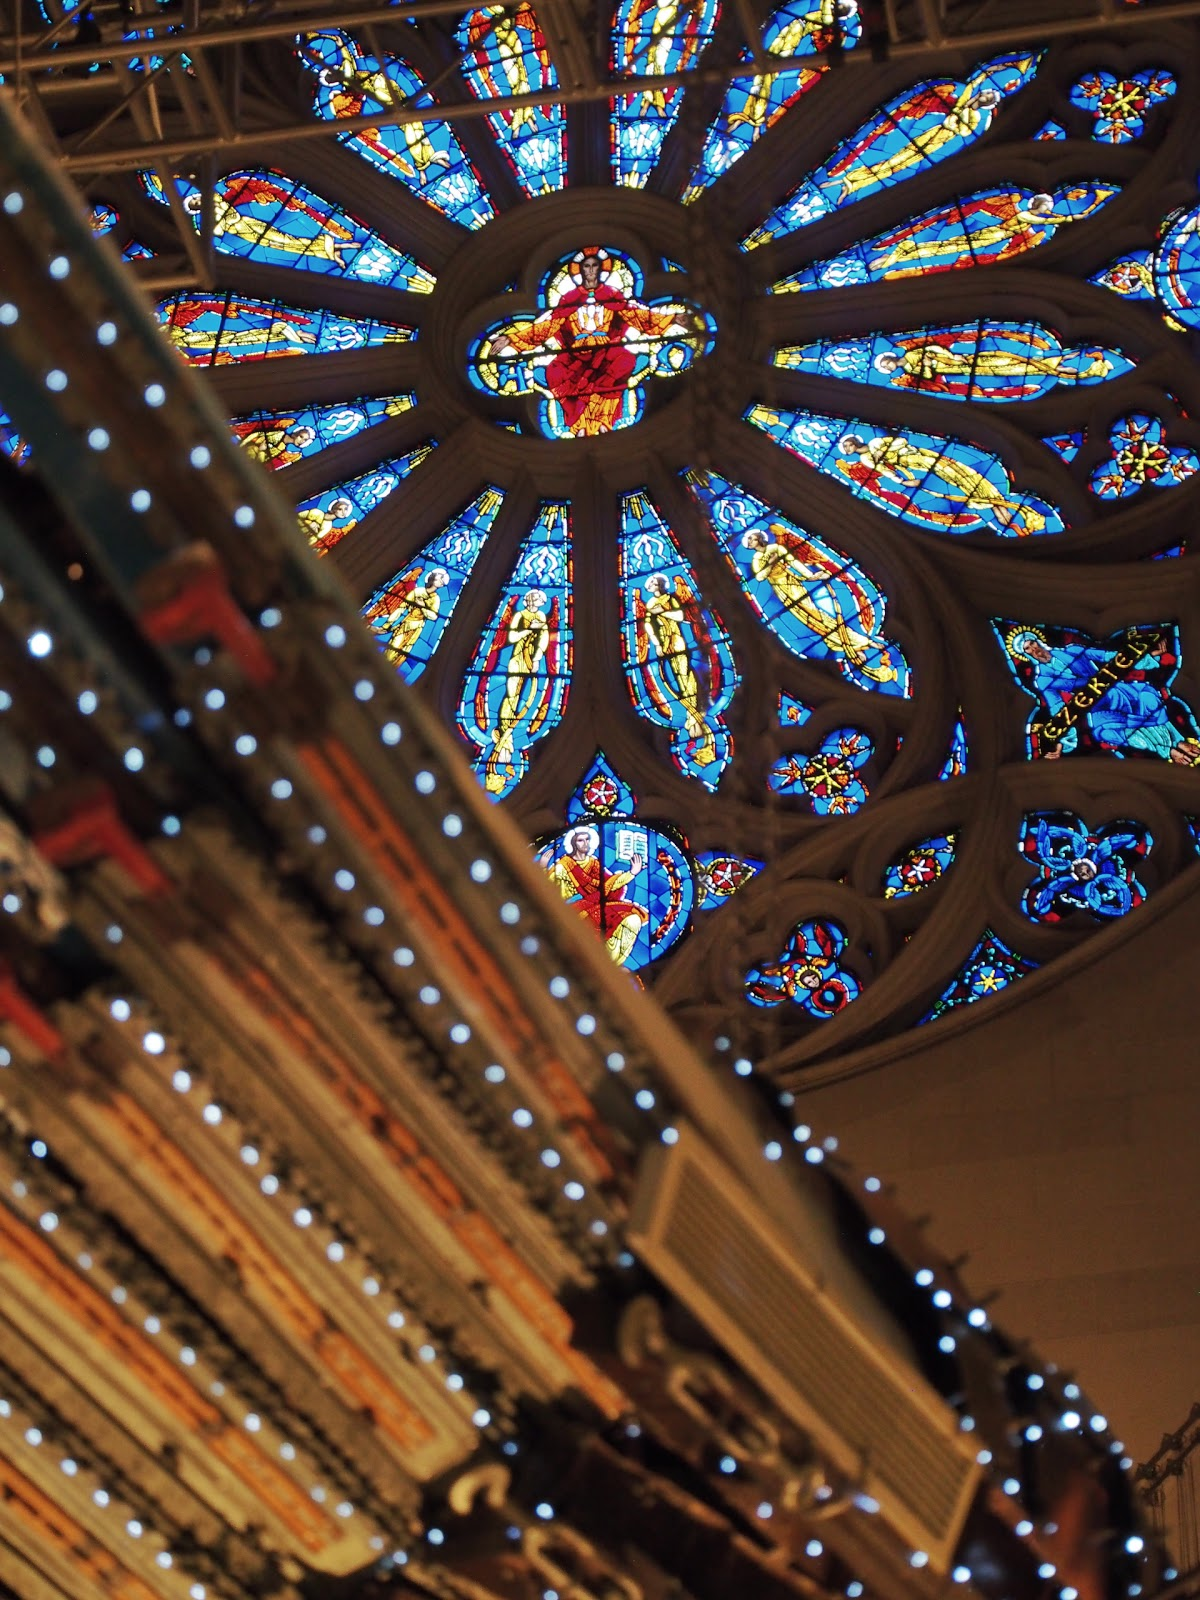 The Rose Window #therosewindow #rosewindow #phoenix  #xubing #stjohnthedivinecathedral #art #nyc ©2014 Nancy Lundebjerg